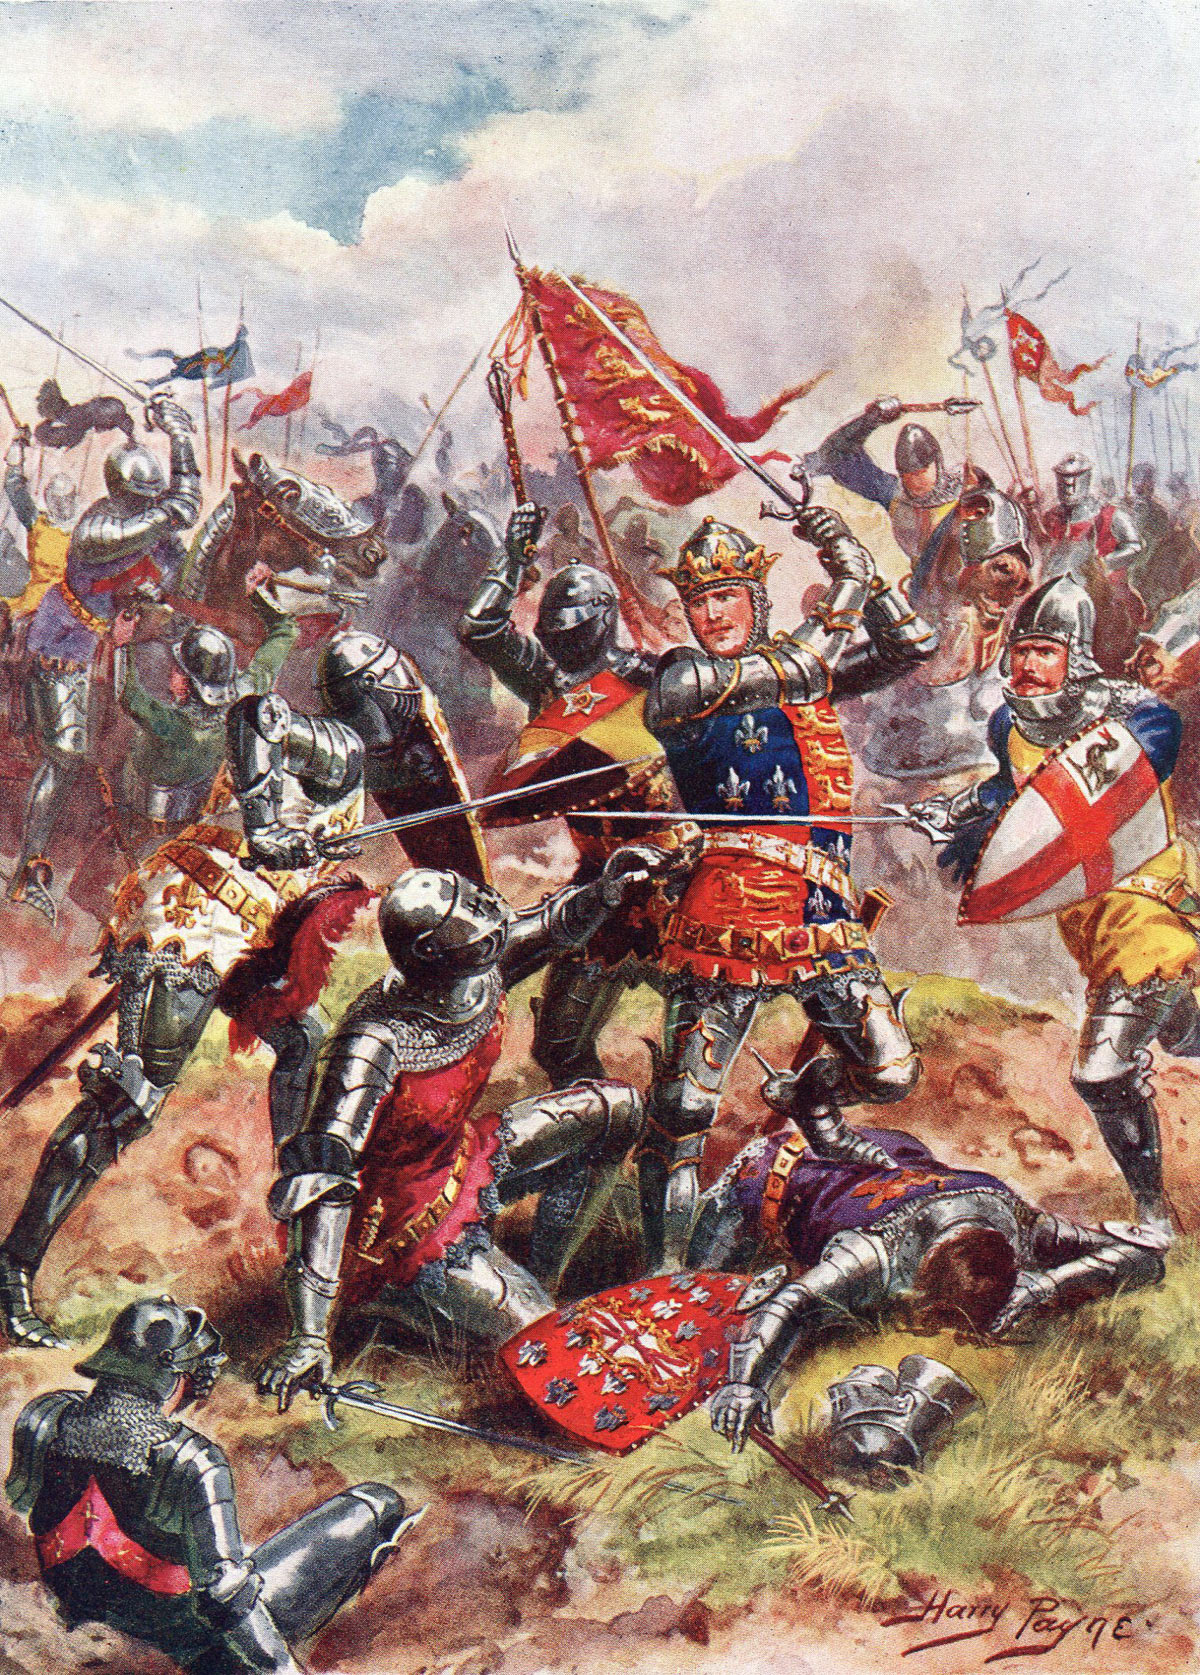 King Henry V at the Battle of Agincourt on 25th October 1415 in the Hundred Years War